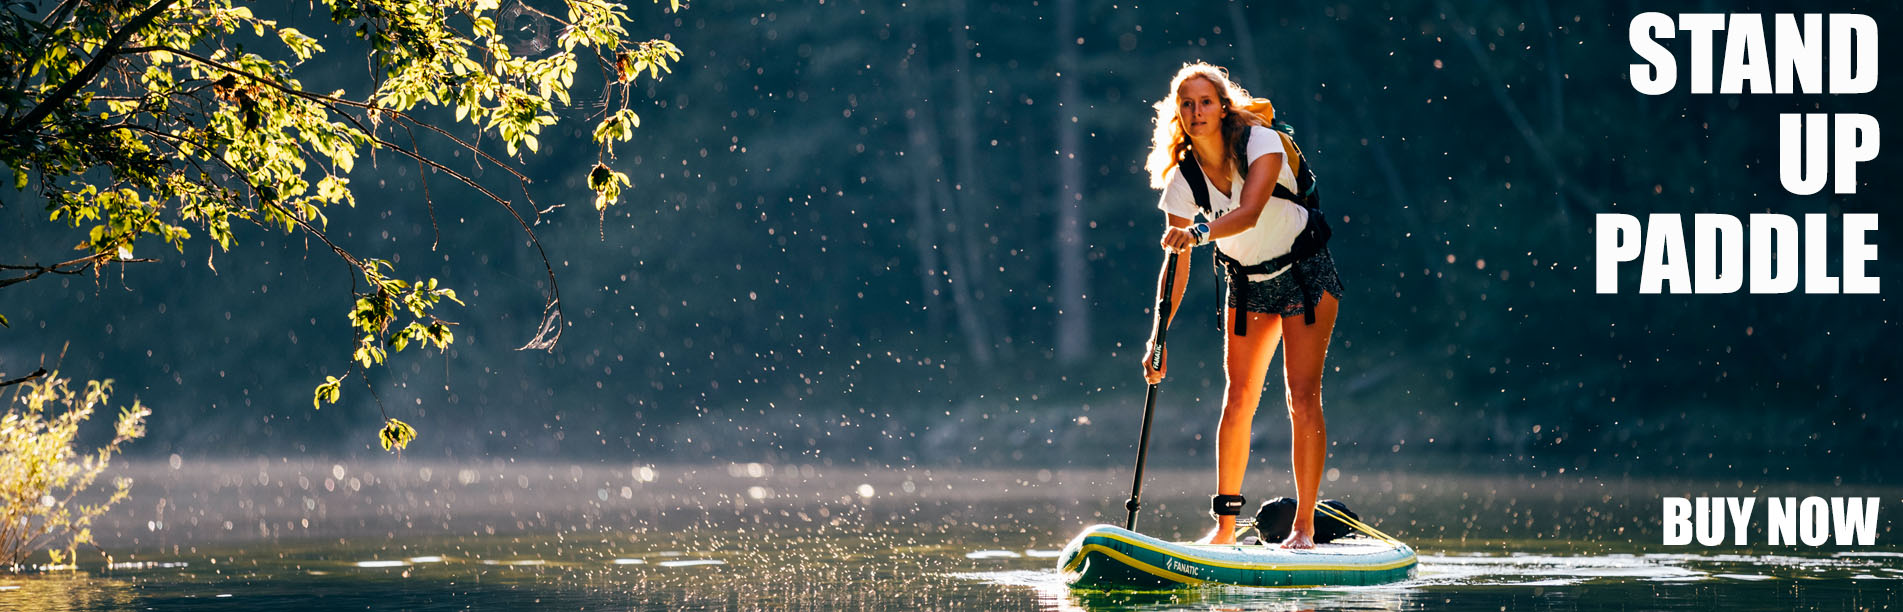 SUMMER STAND UP PADDLE 2021